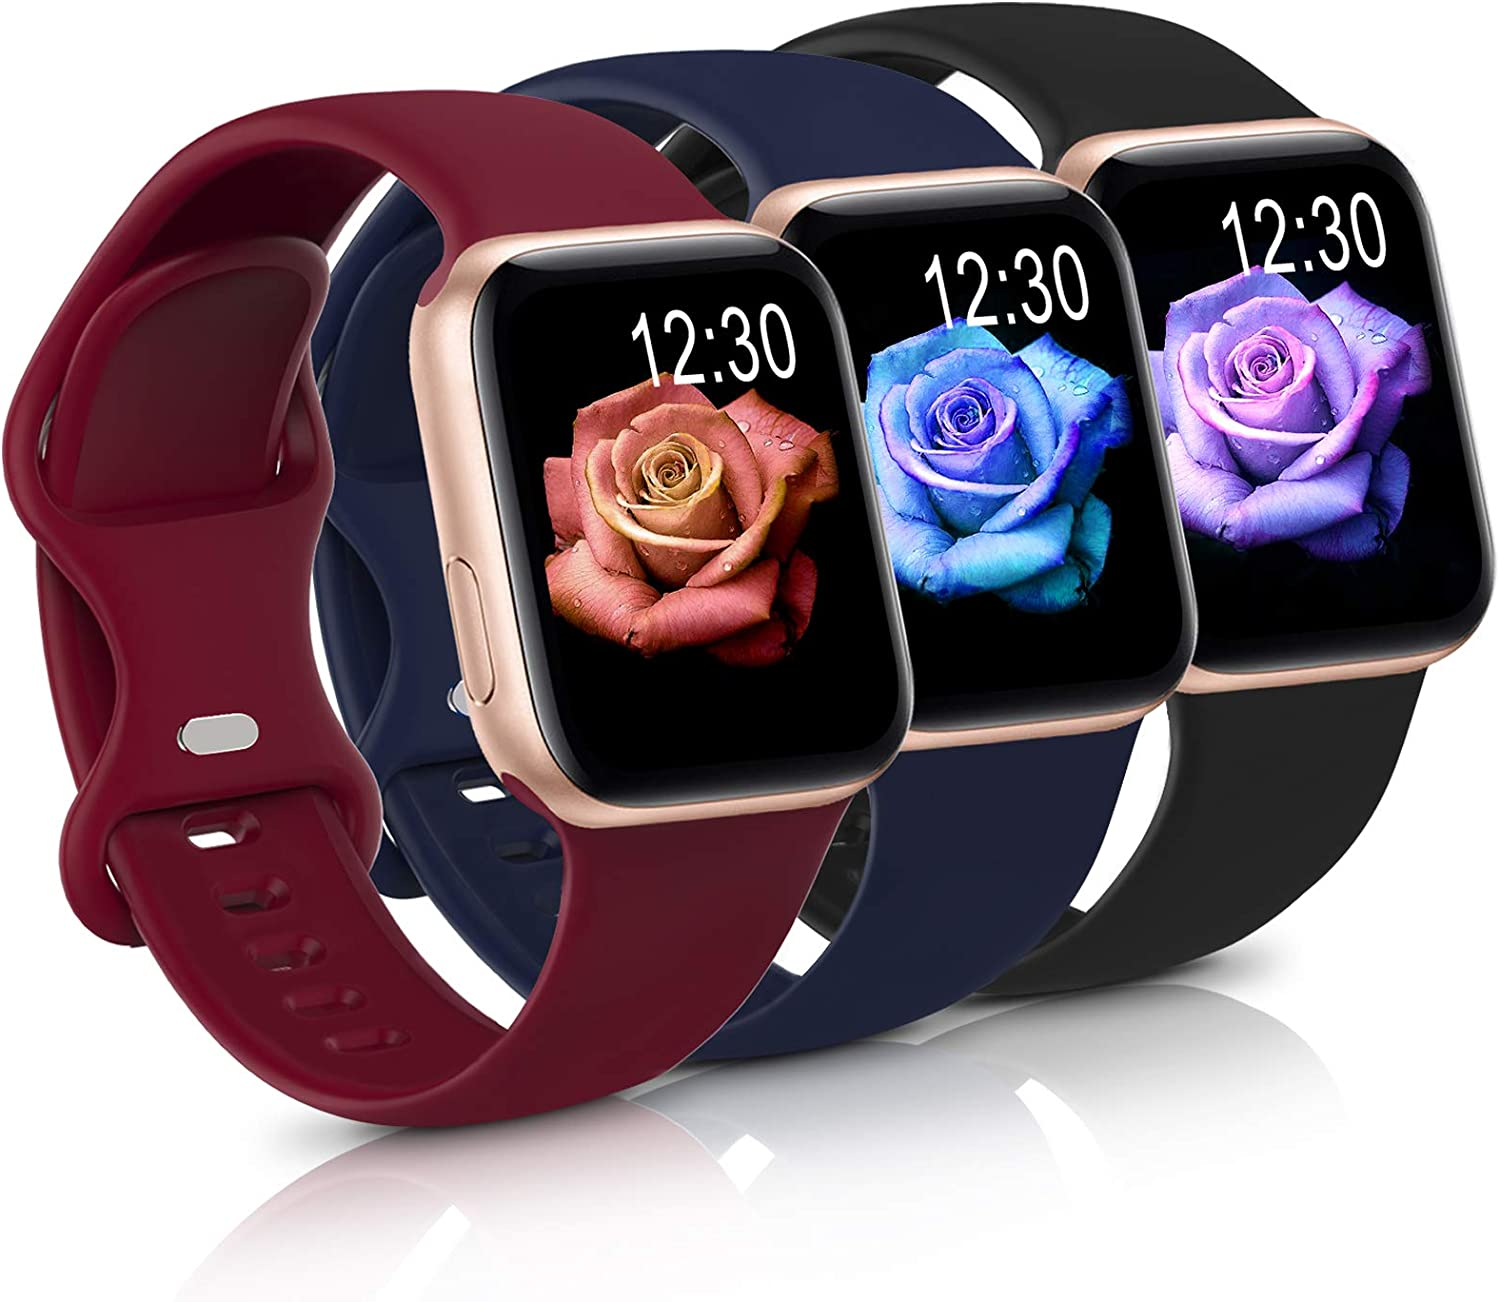 Sport Band Compatible with Apple Watch iWatch Bands 38mm 40mm,Soft Silicone Strap Wristbands for Apple Watch Series 3 6 5 4 2 1 SE Women Men Pack 3,Black/MidnightBlue/Burgundy,38/40mm,M/L